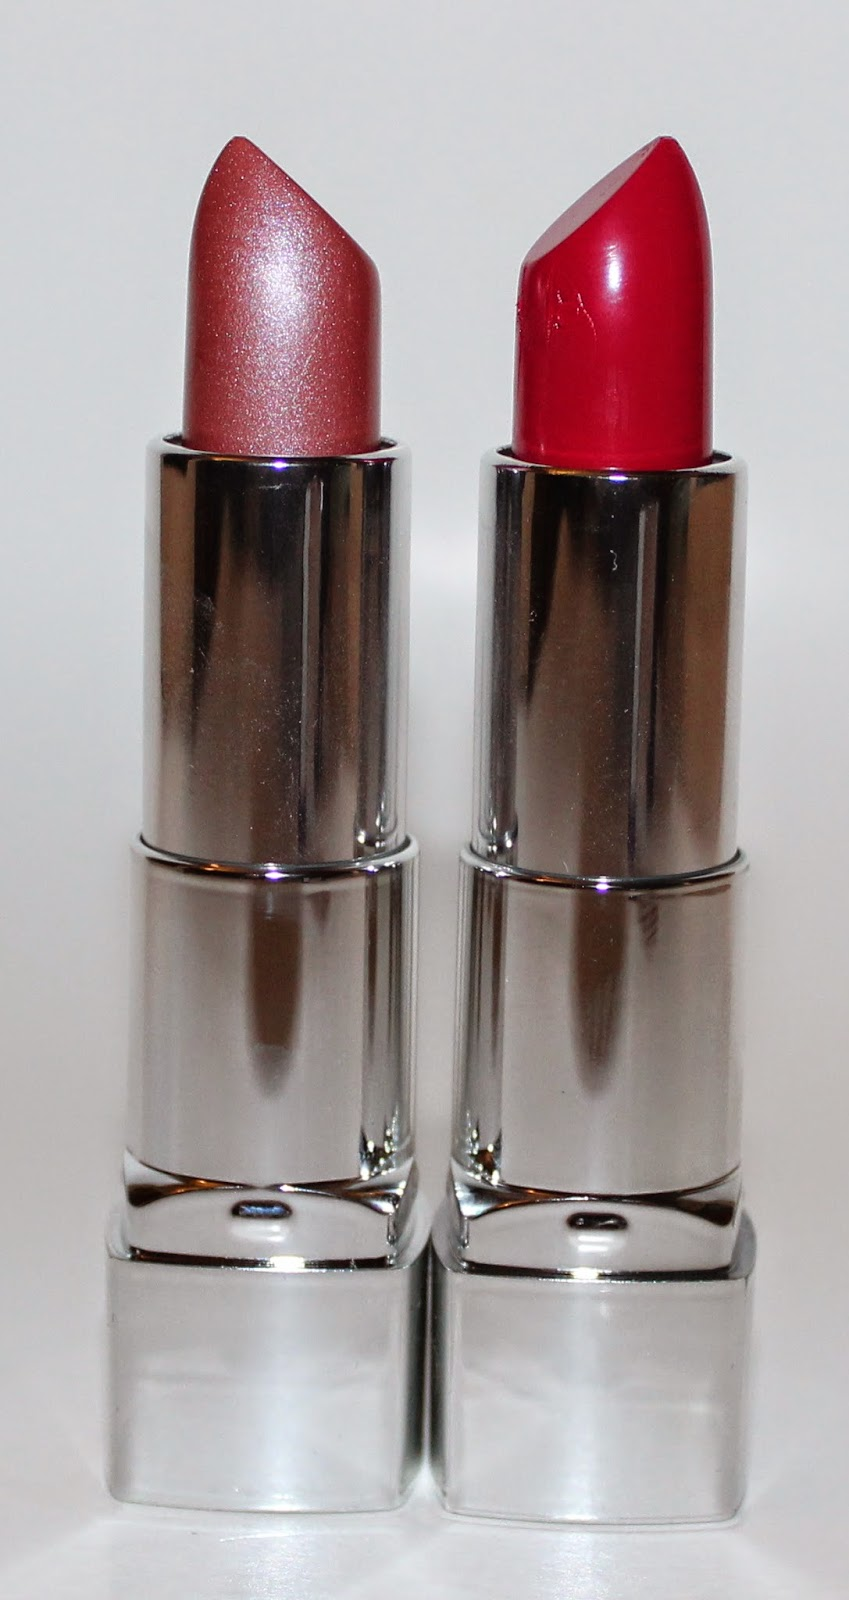 Rimmel Moisture Renew Lipstick in #125 To Nude or Not to Nude? & #360 As You Want Victoria